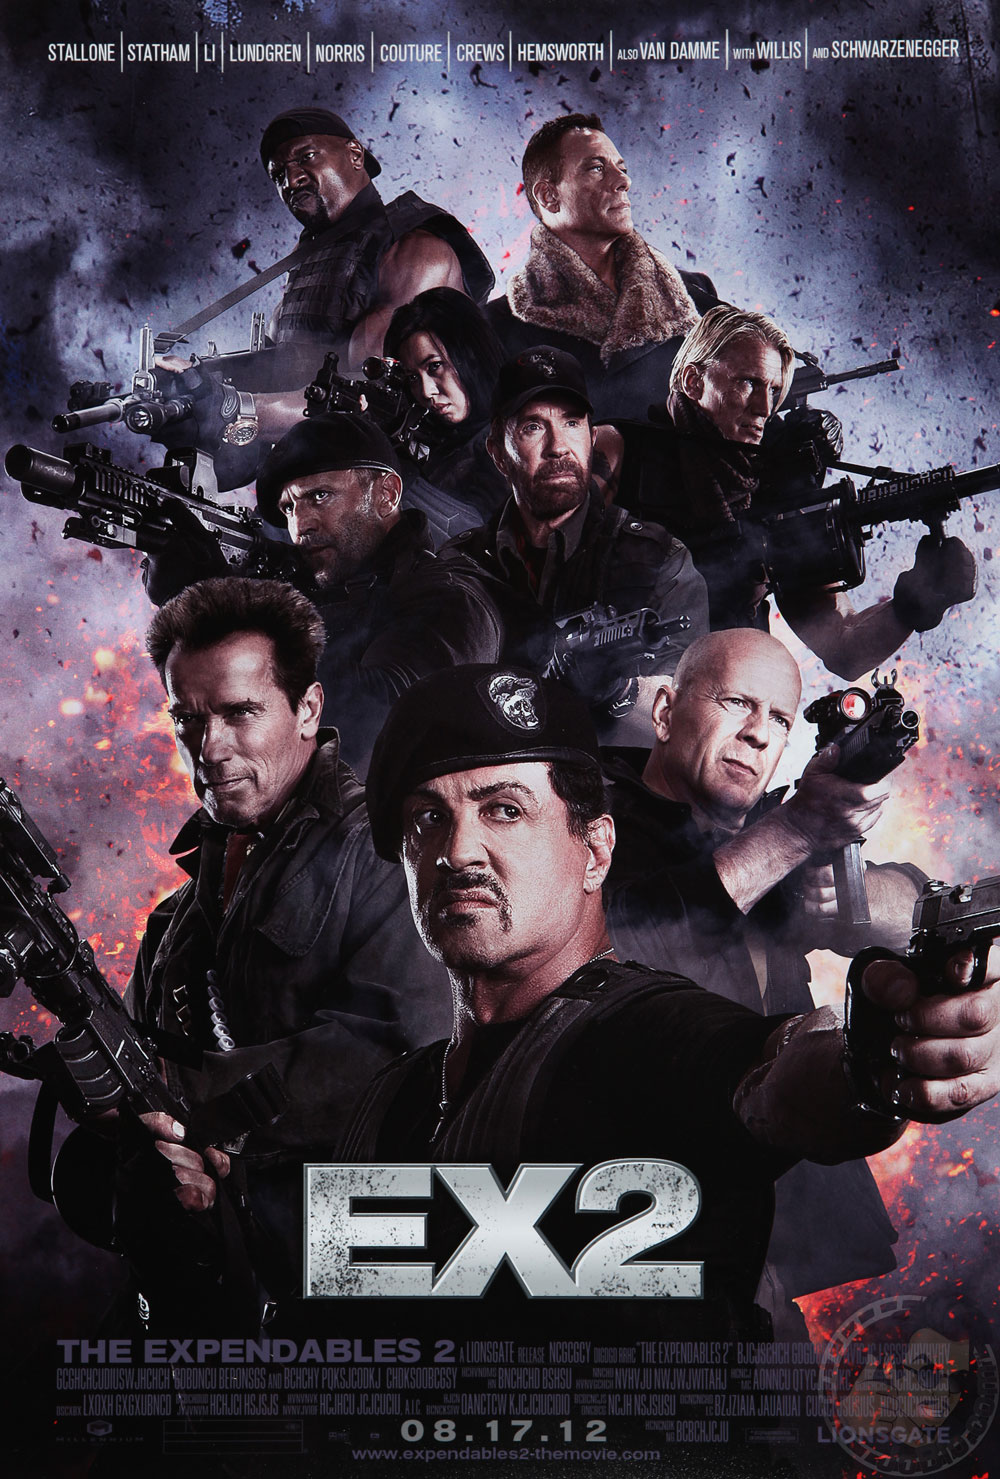 expend2 poster 1 The Expendables 2 Official Poster Reavels the Most Powerful Image EVER.